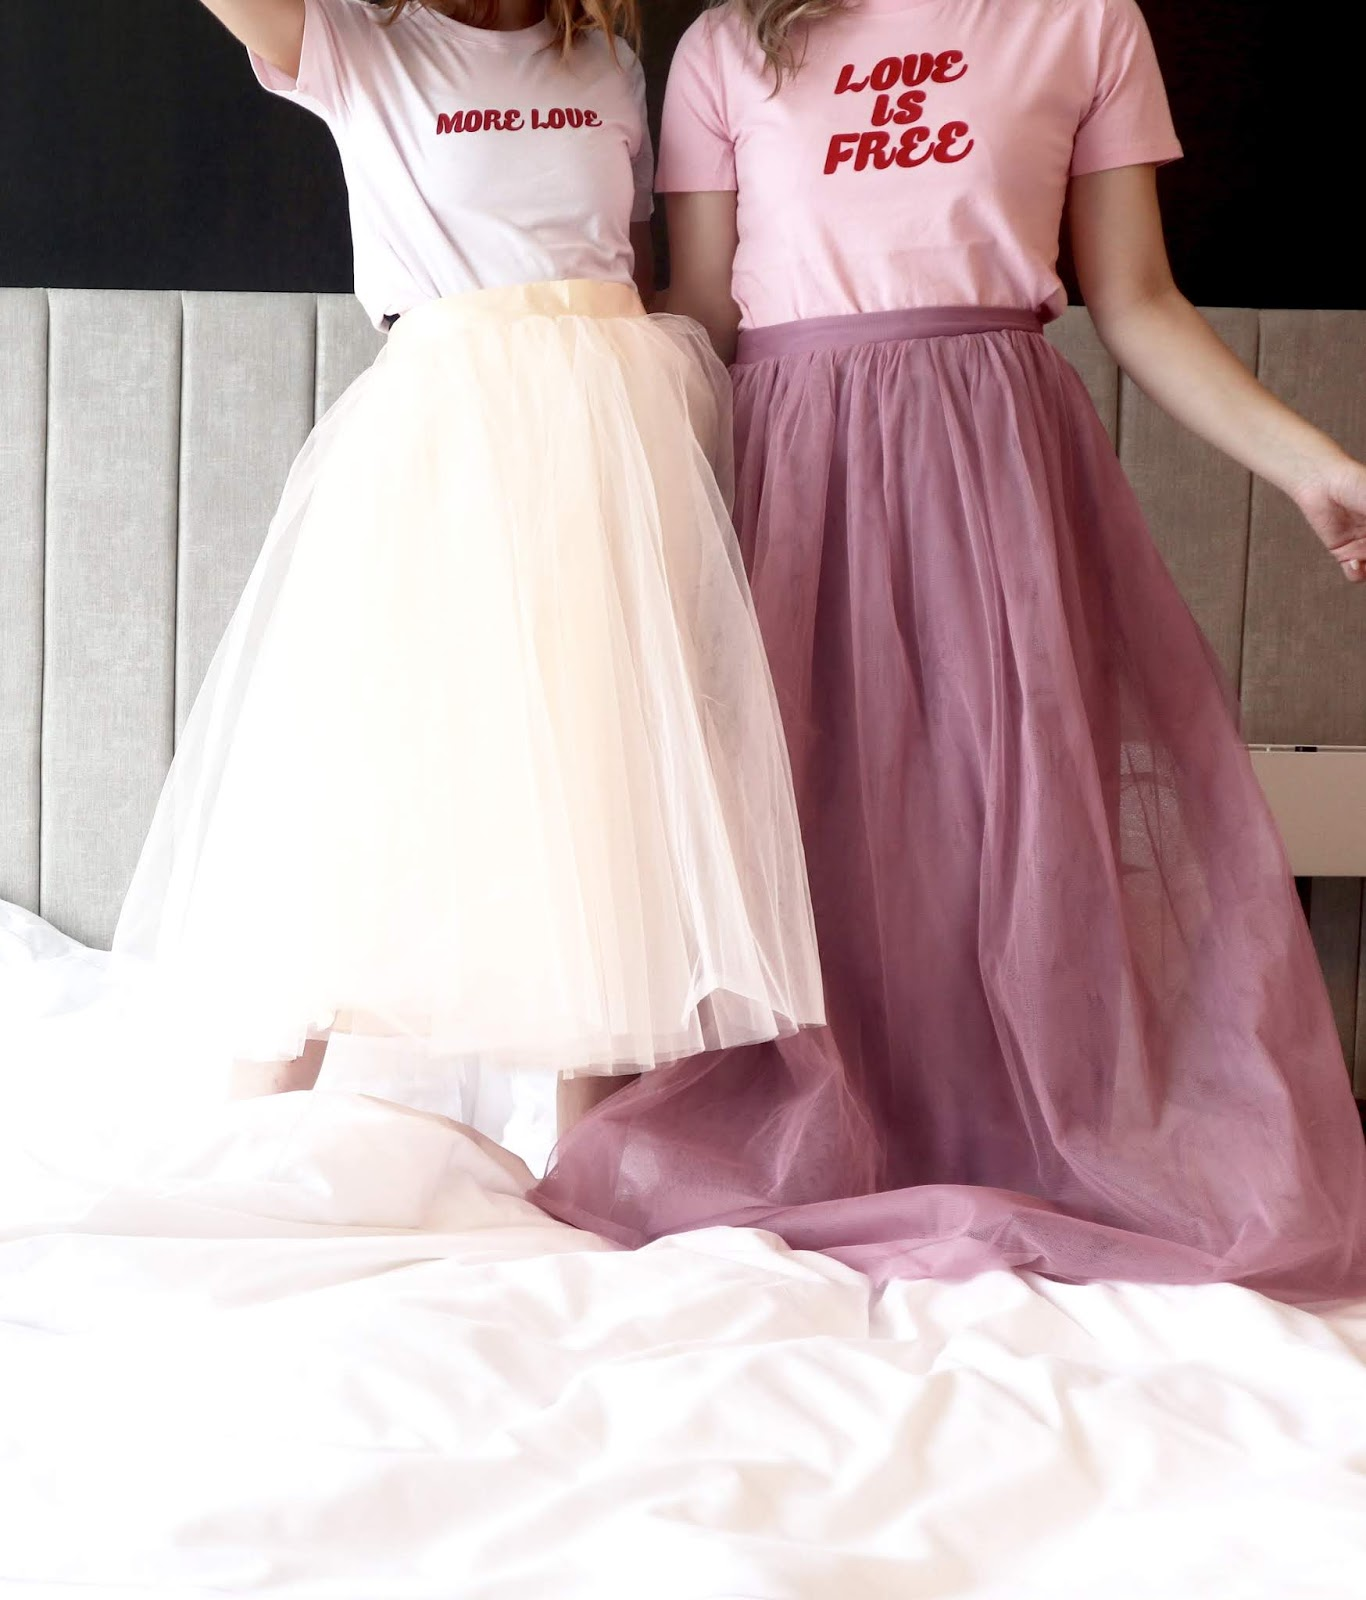 hotel x toronto more love t shirts and tulle skirts